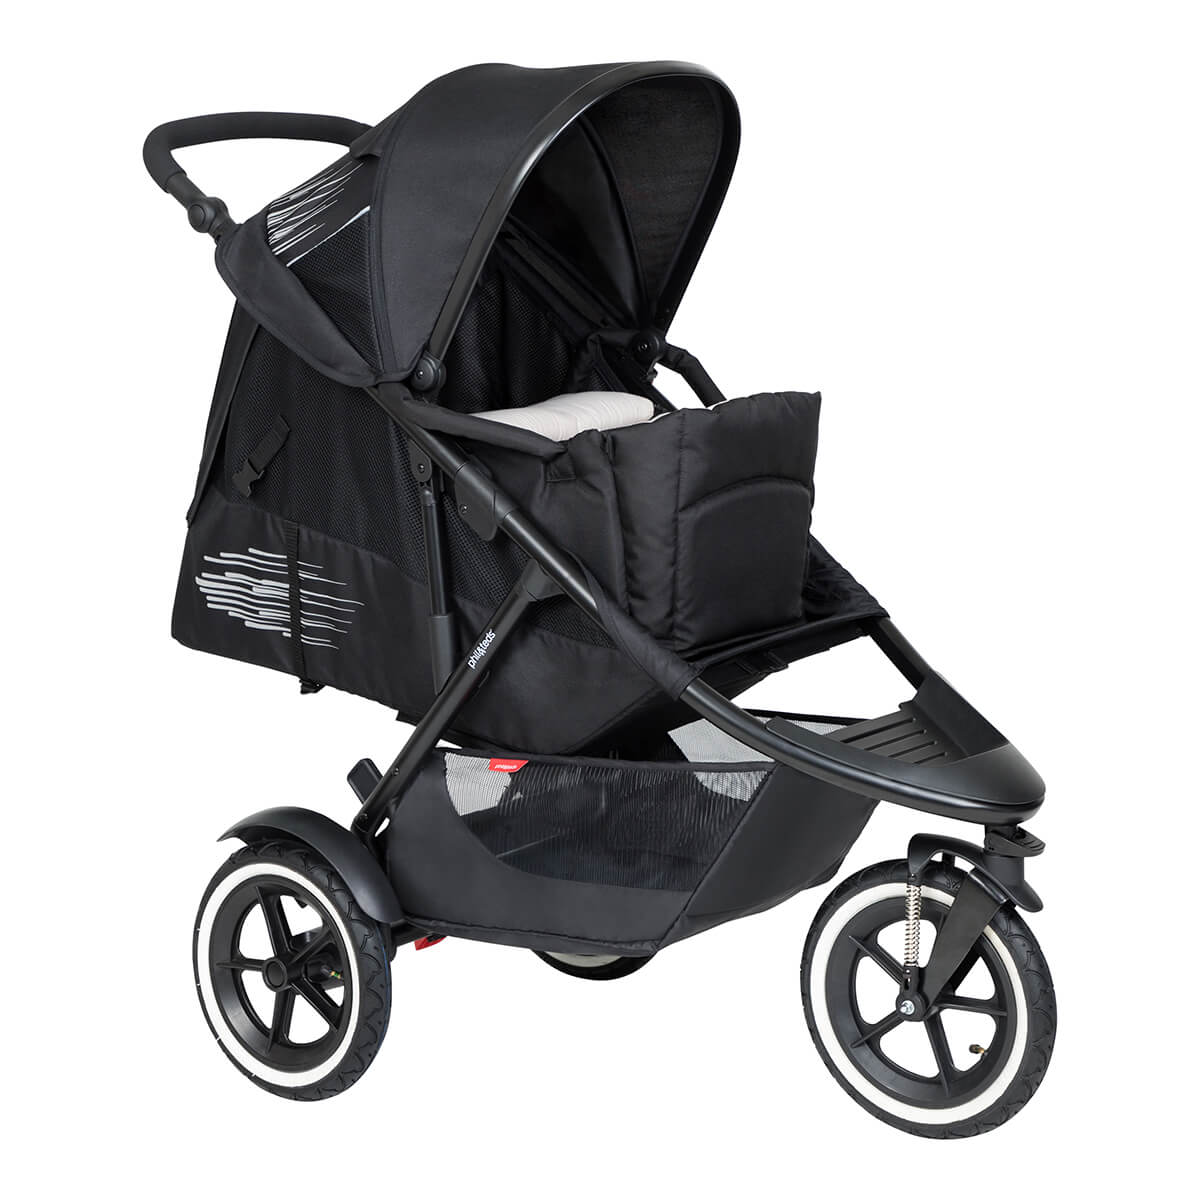 https://cdn.accentuate.io/4509528719448/19272668119128/philteds-sport-poussette-with-cocoon-full-recline-v1626484516161.jpg?1200x1200